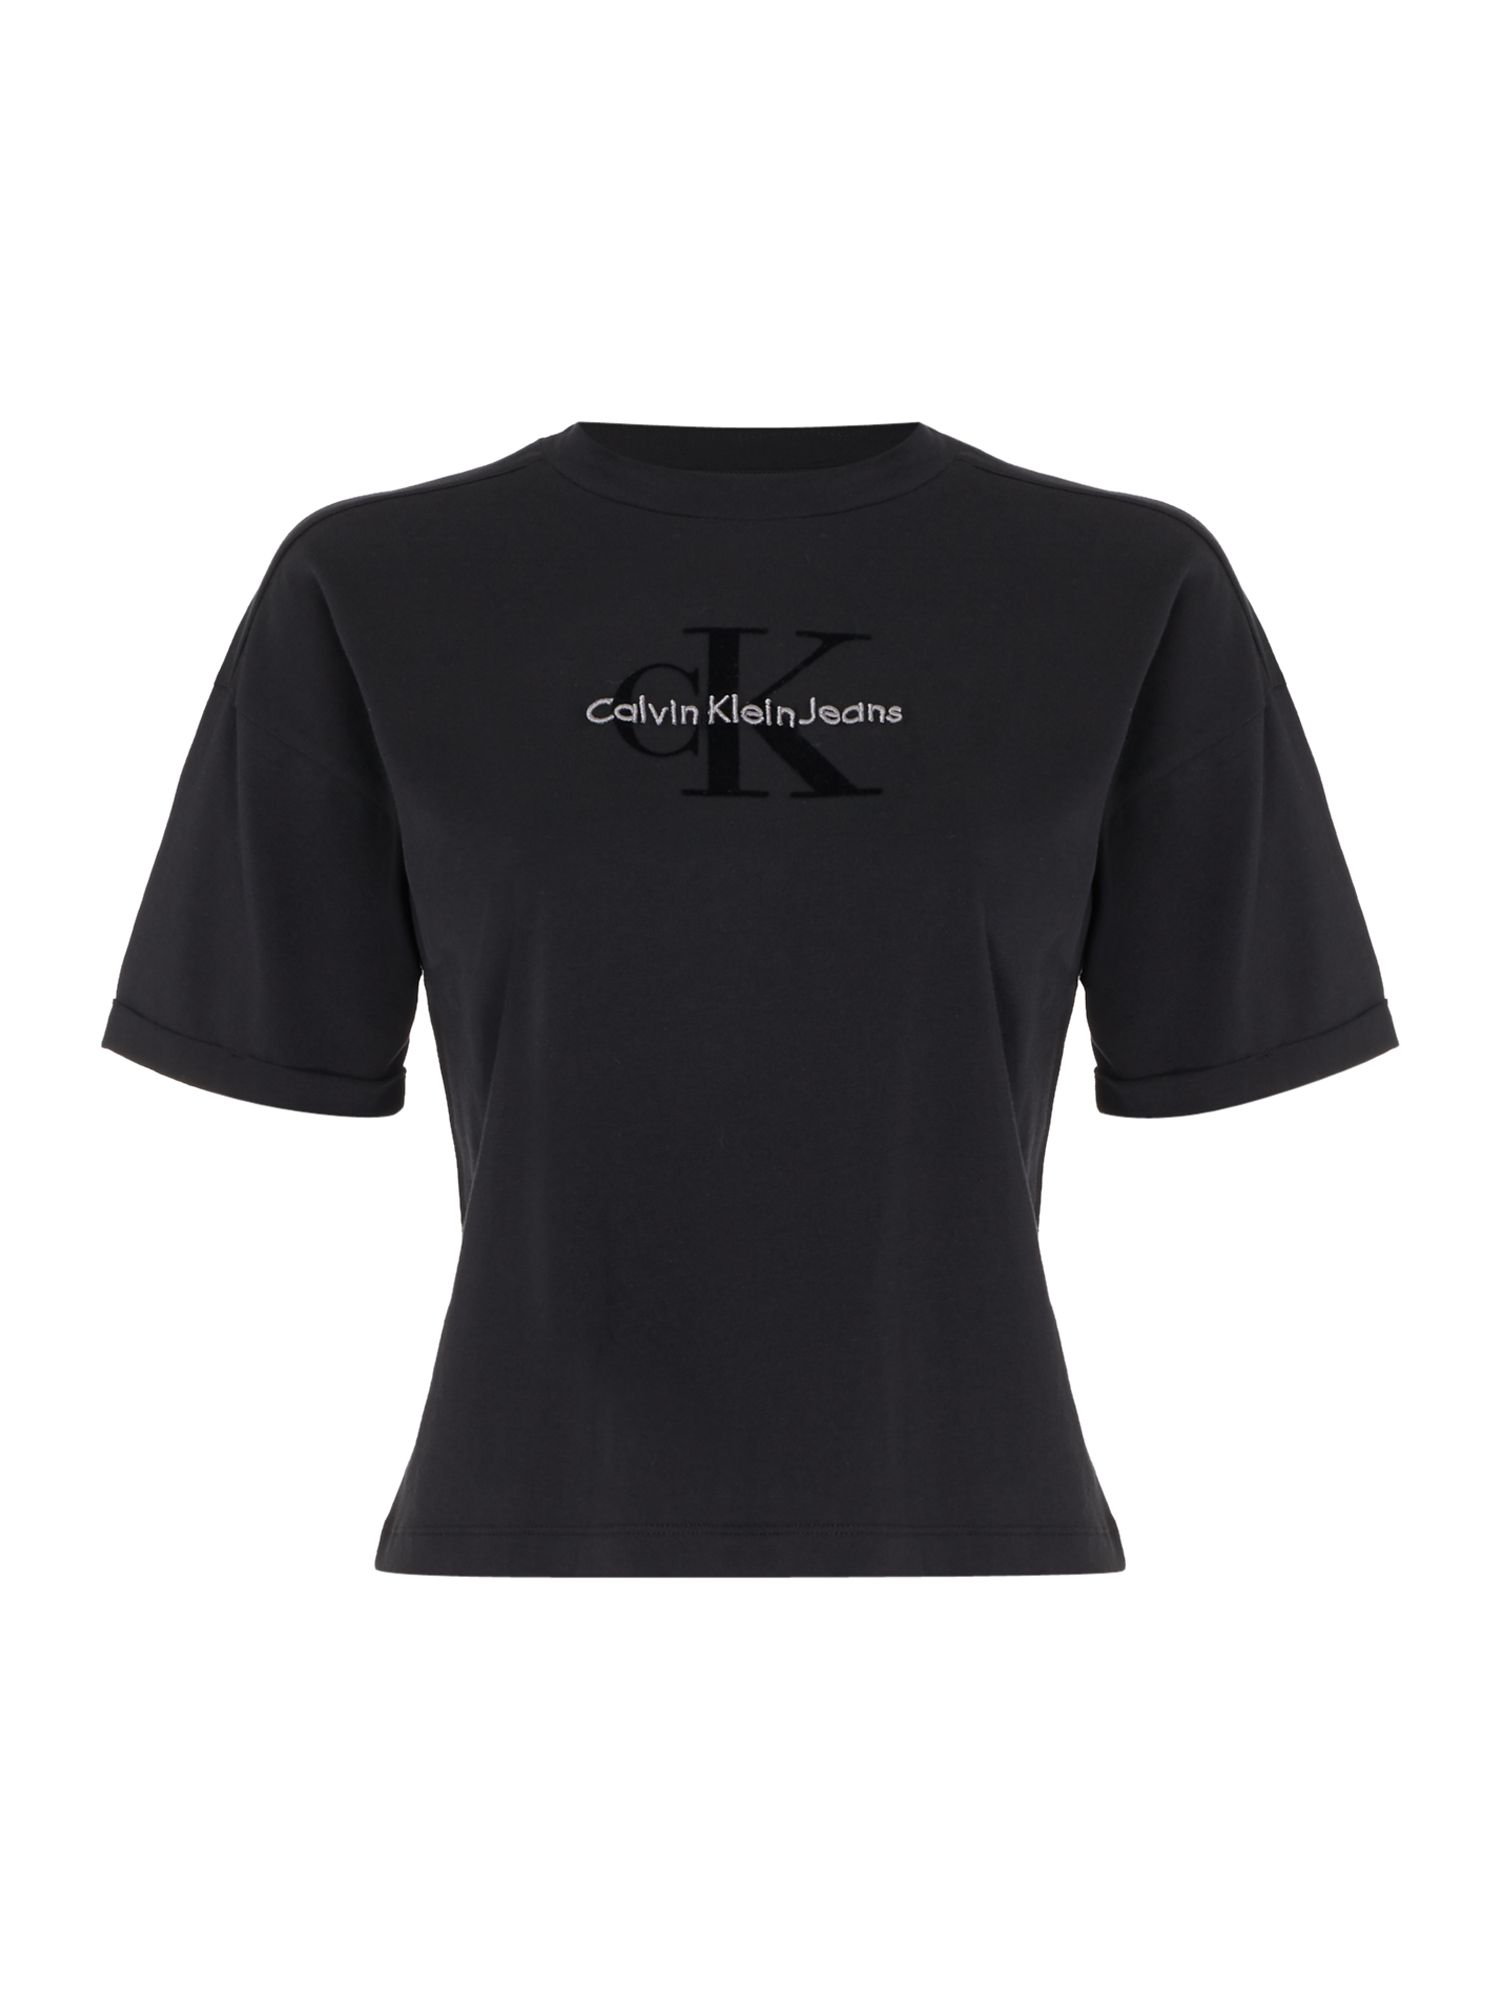 Calvin Klein Teco short sleeve true icon crop tshirt, Black